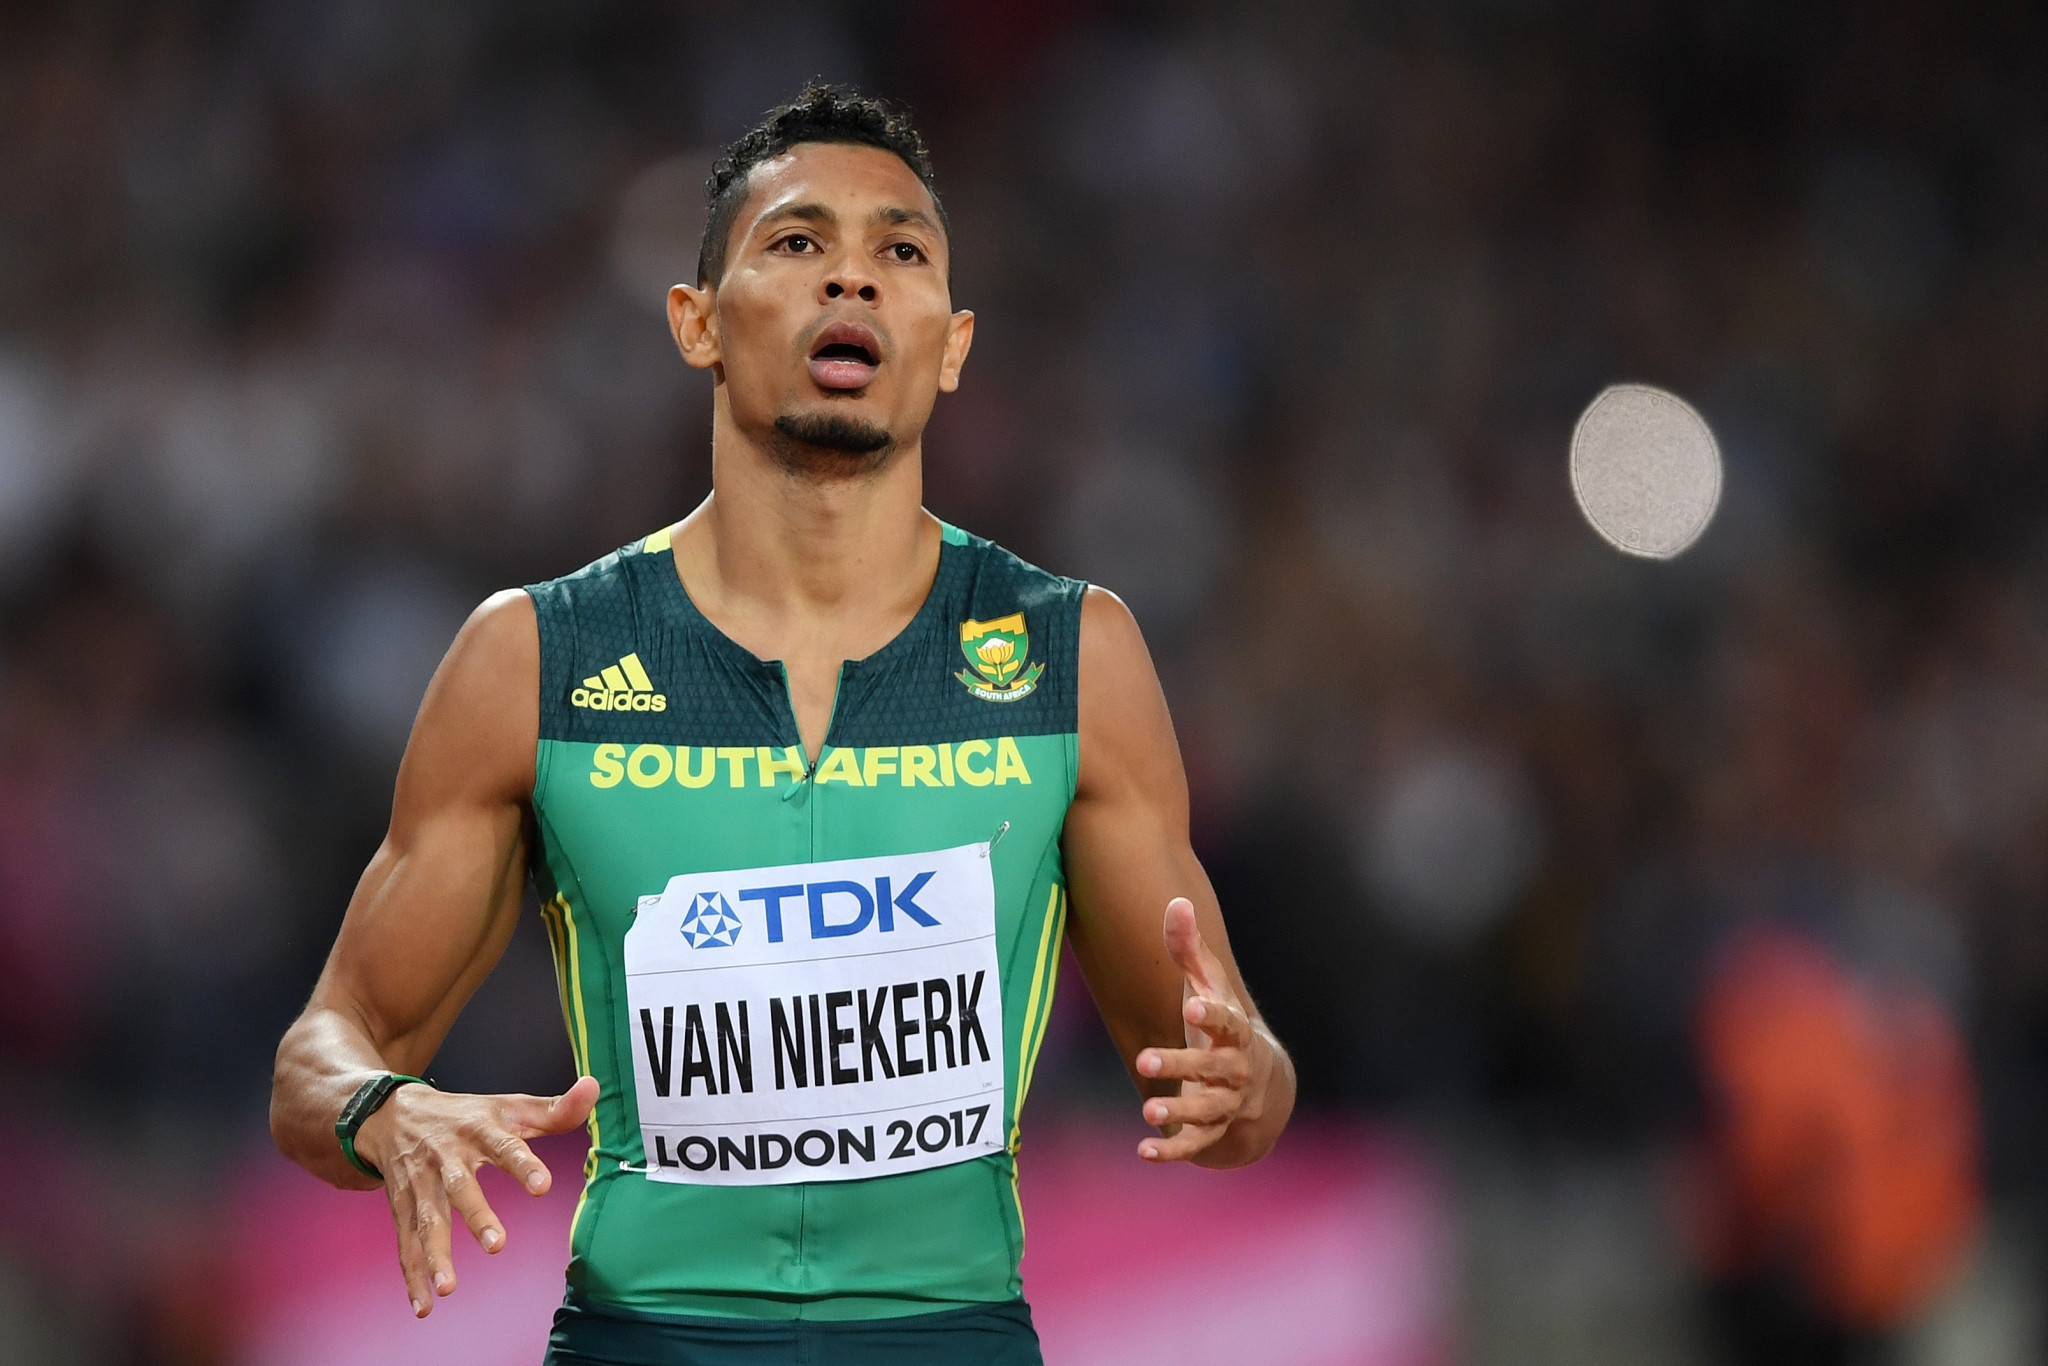 """Van Niekerk """"comfortable and confident"""" over Olympic title defence after return to competition"""